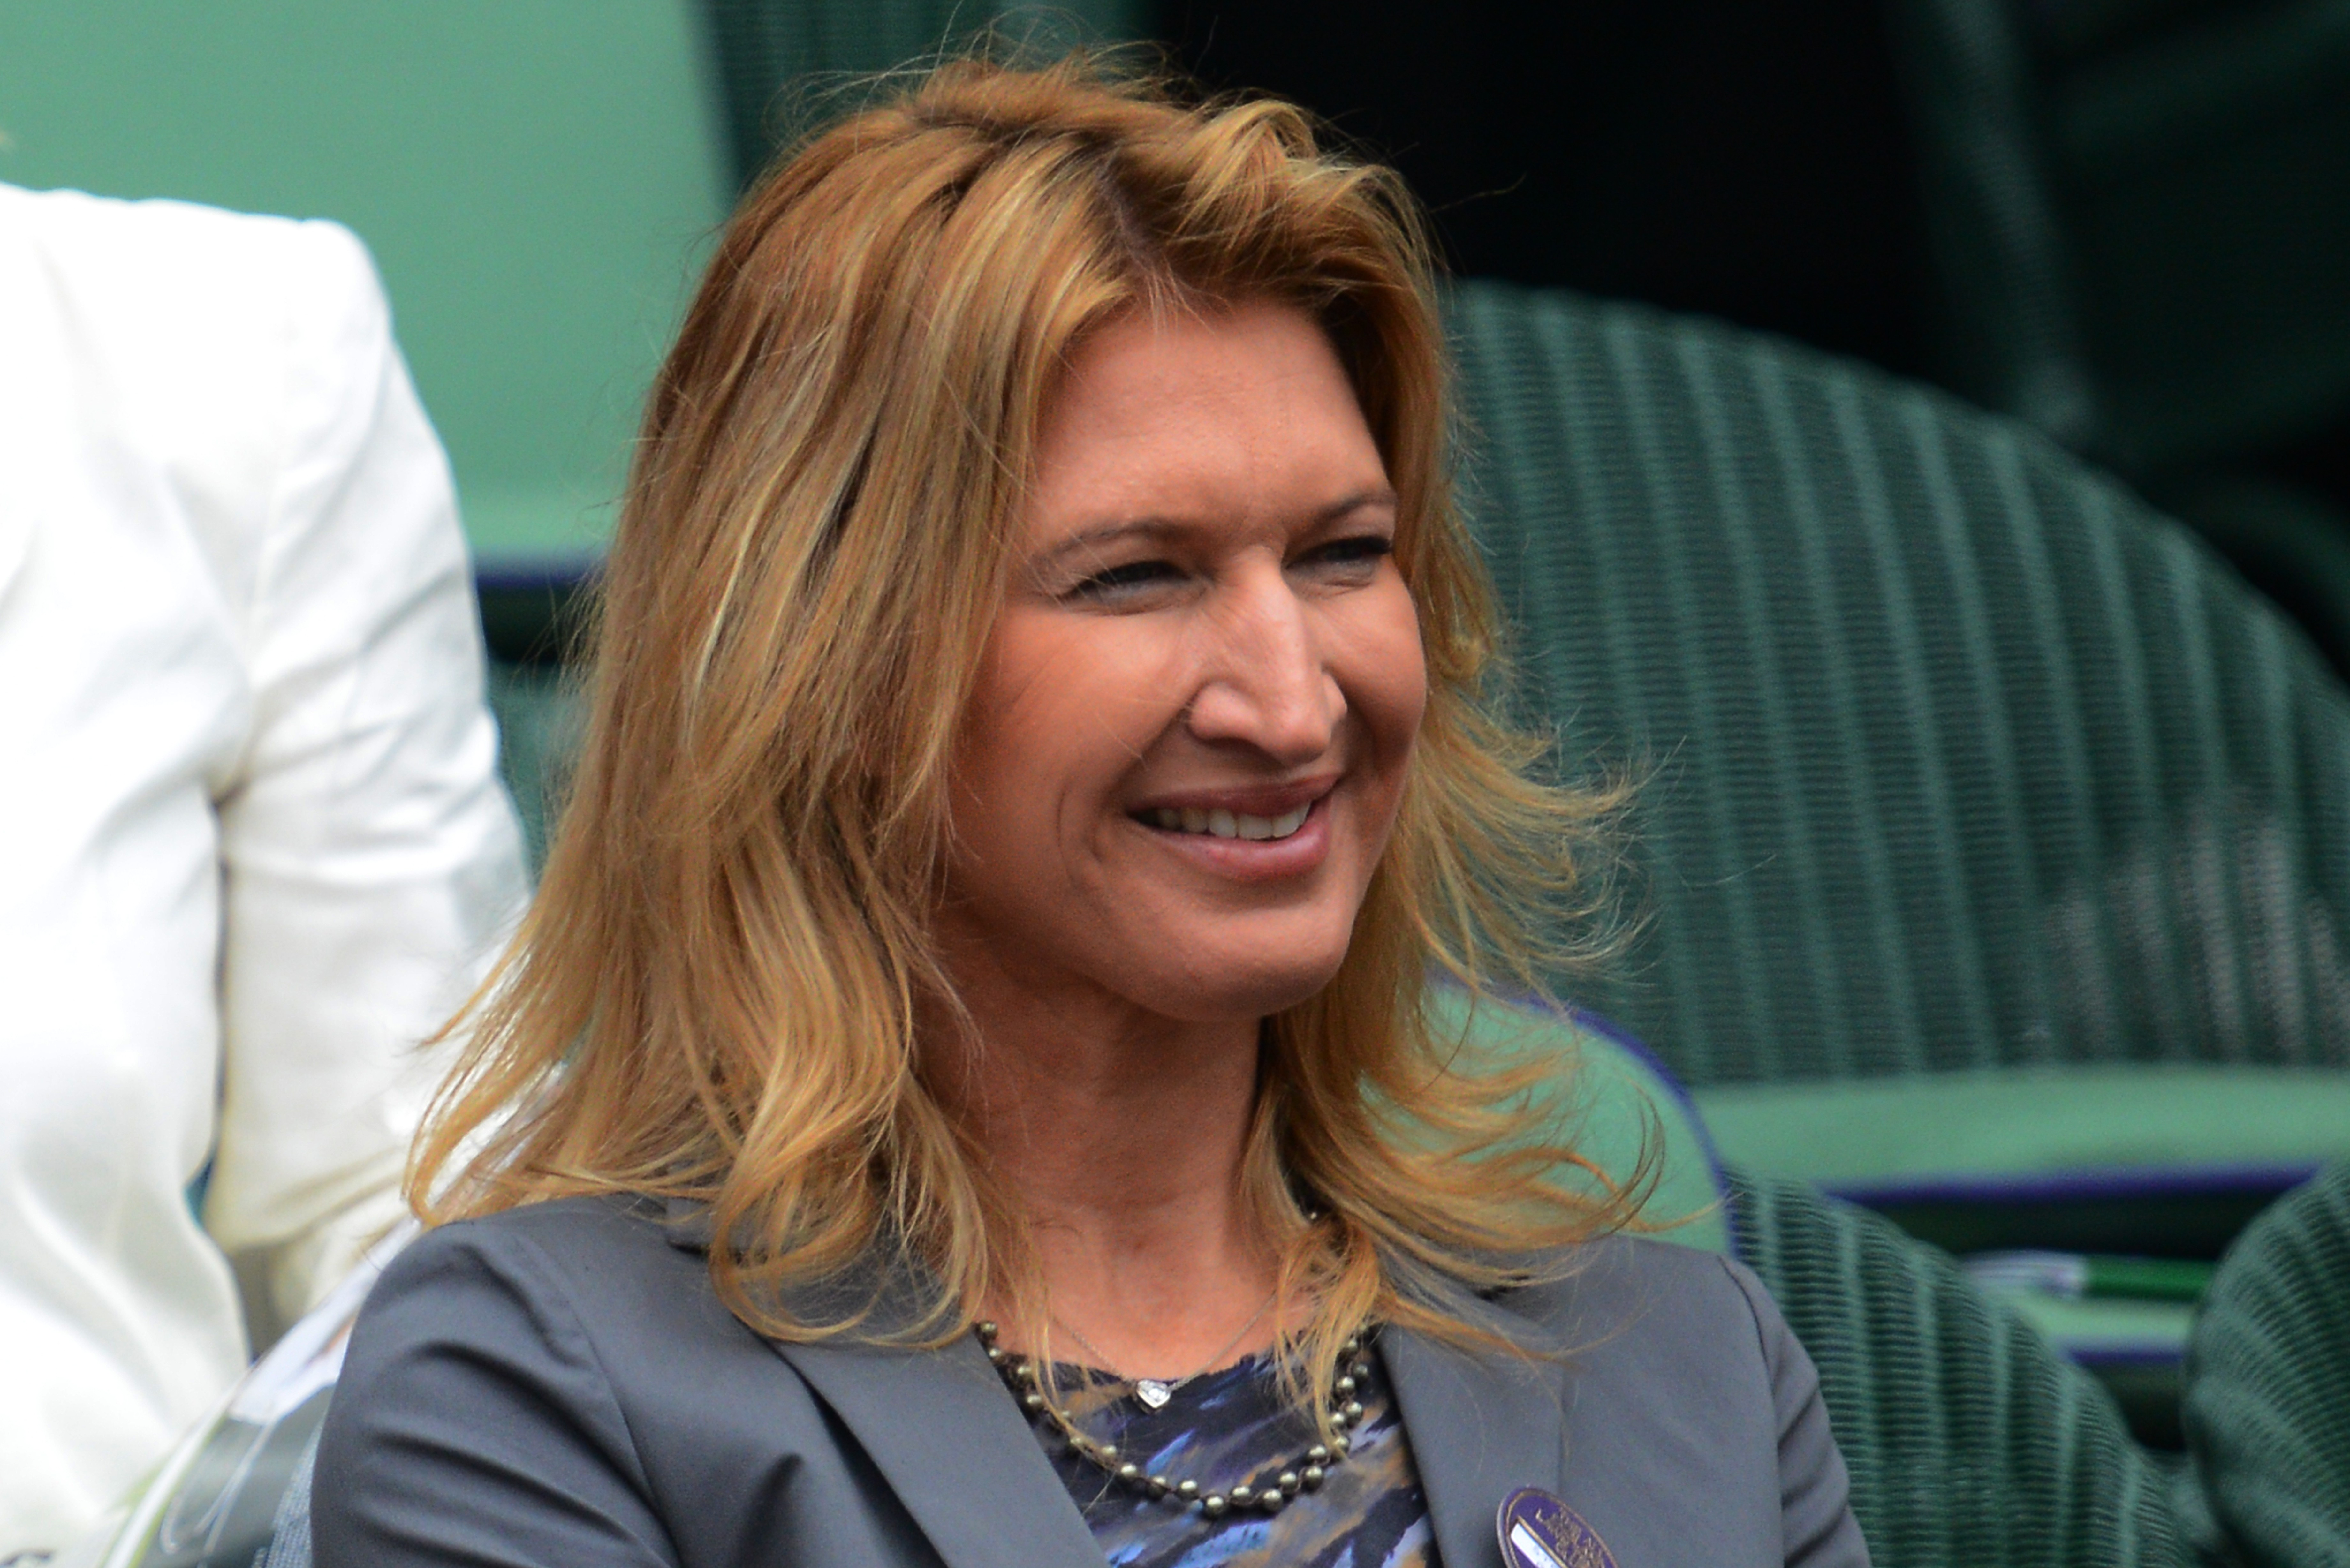 Former German tennis player Steffi Graf in the Royal Box on Centre Court on day nine of the 2012 Wimbledon Championships tennis tournament at the All England Tennis Club in Wimbledon, southwest London, on July 4, 2012. AFP PHOTO / LEON NEAL RESTRICTED TO EDITORIAL USE (Photo credit should read LEON NEAL/AFP/GettyImages)